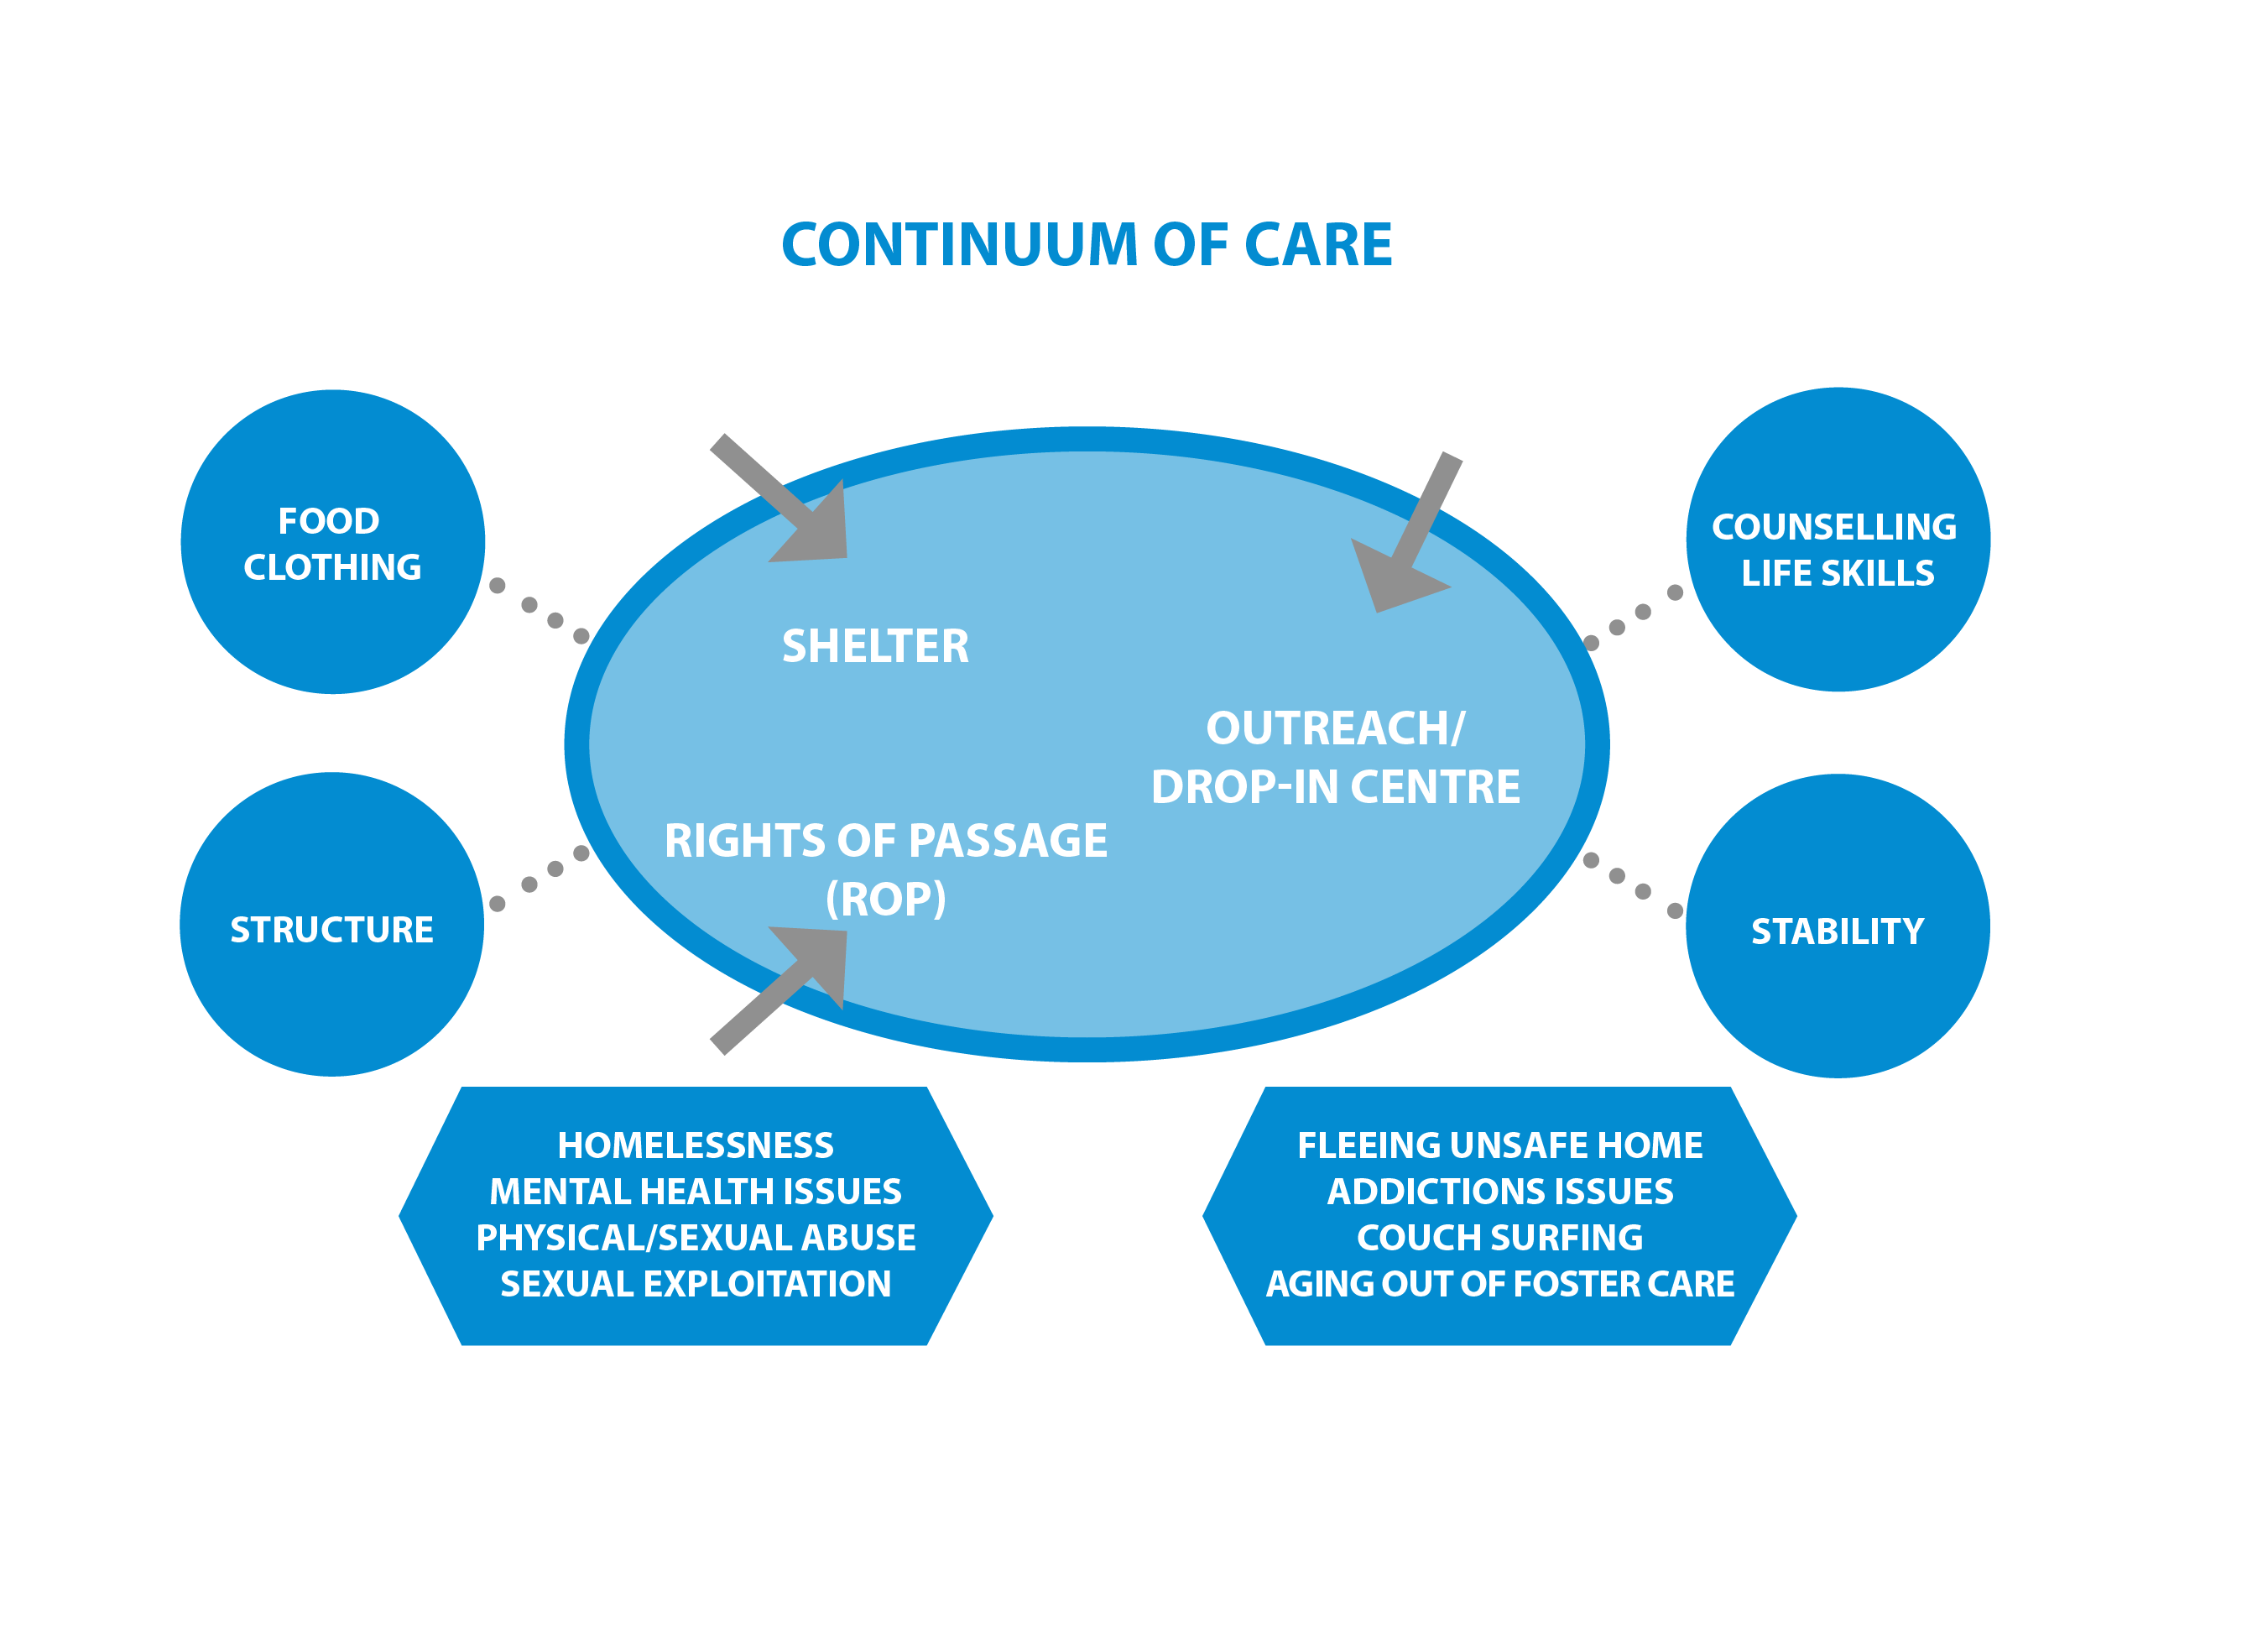 Continuum of Care at Covenant House